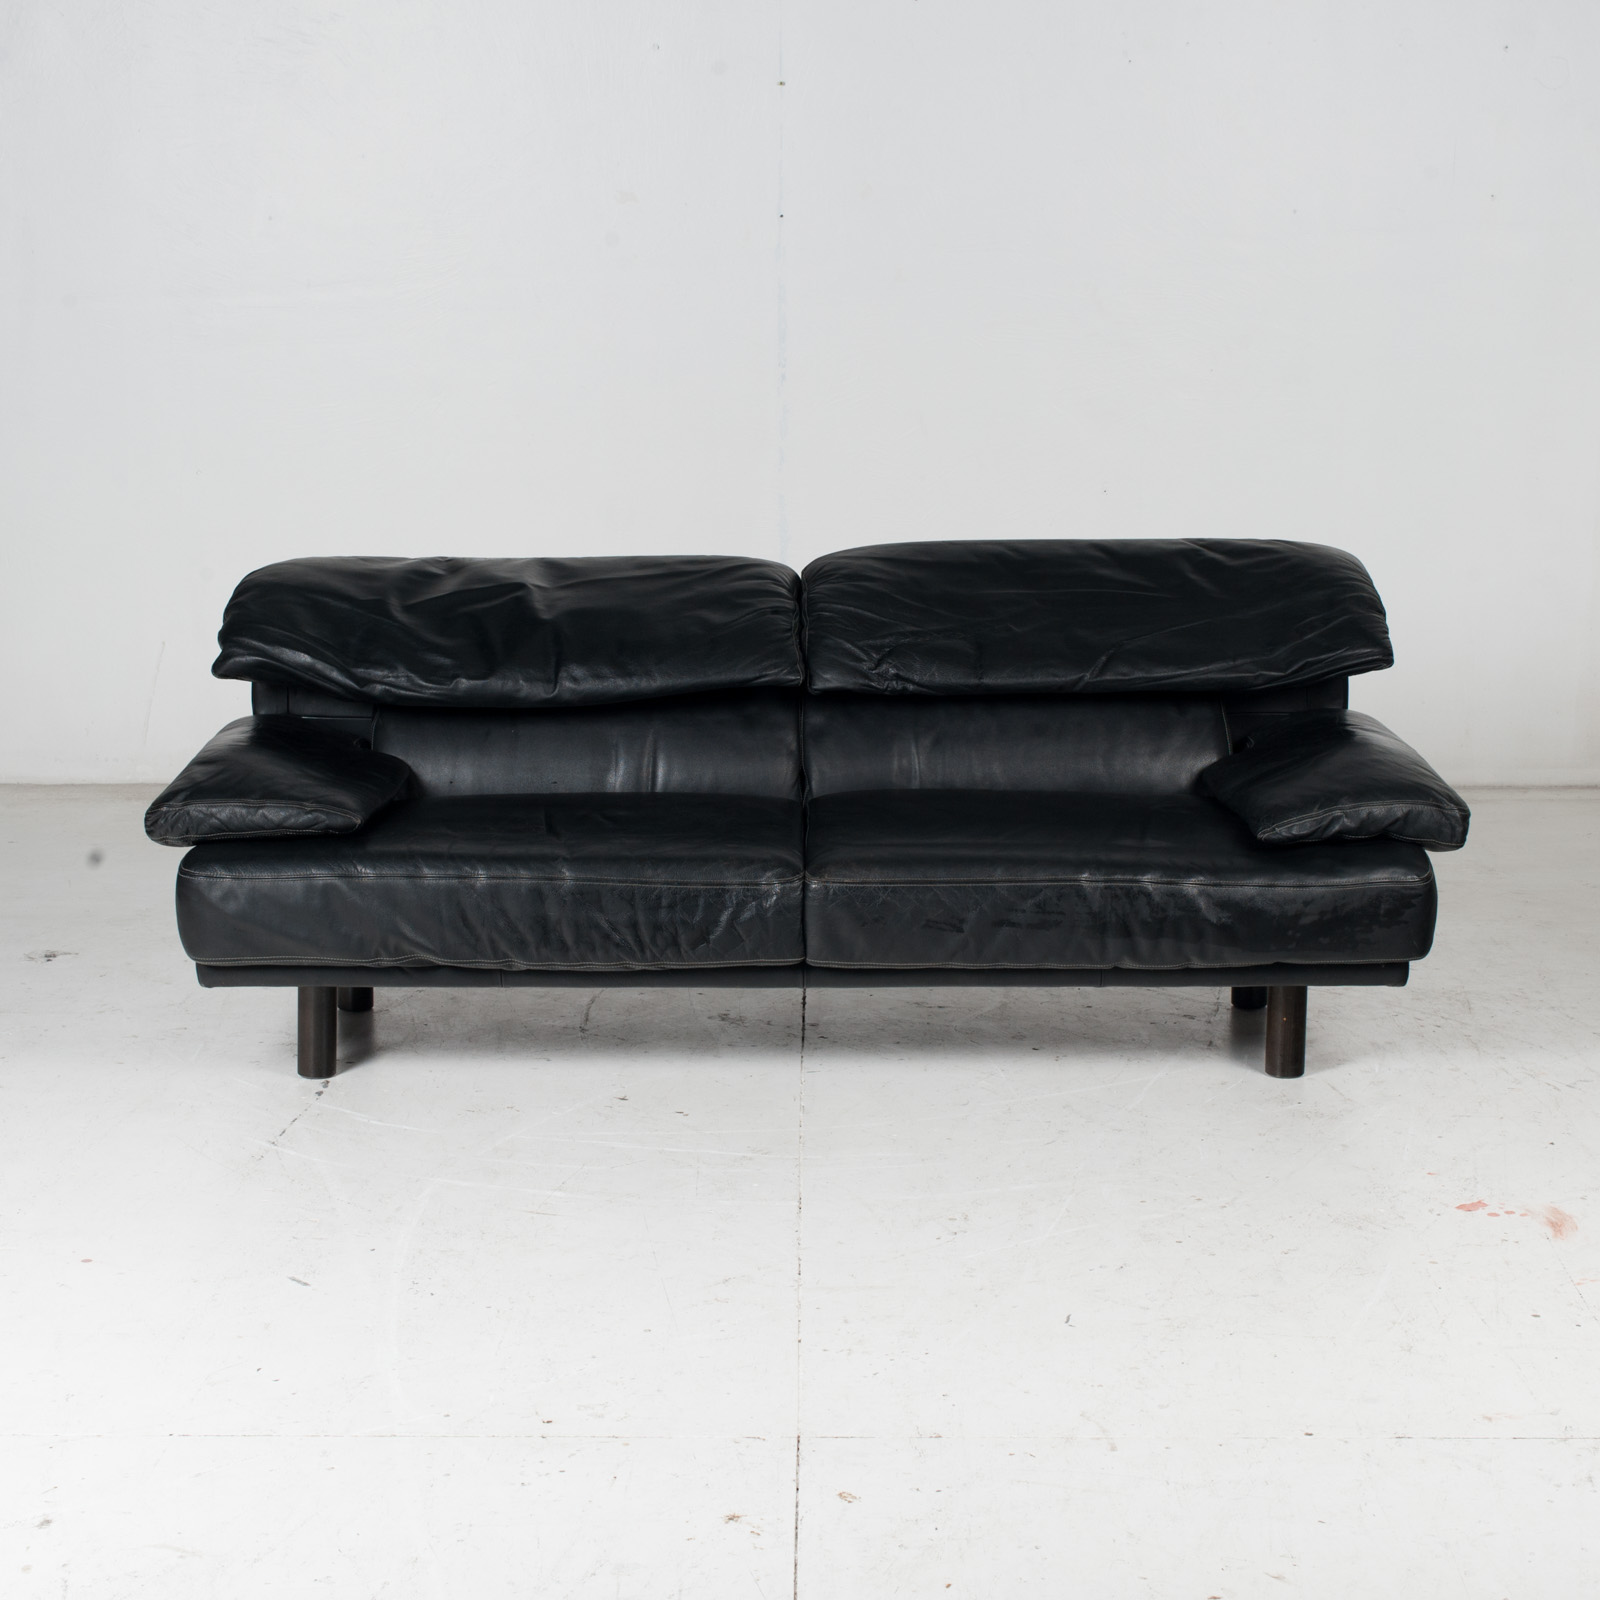 2 Seat Sofa In The Style Of Alanda By Paolo Piva For B&b Italia In Black Leather, 1980s, Italy It 2